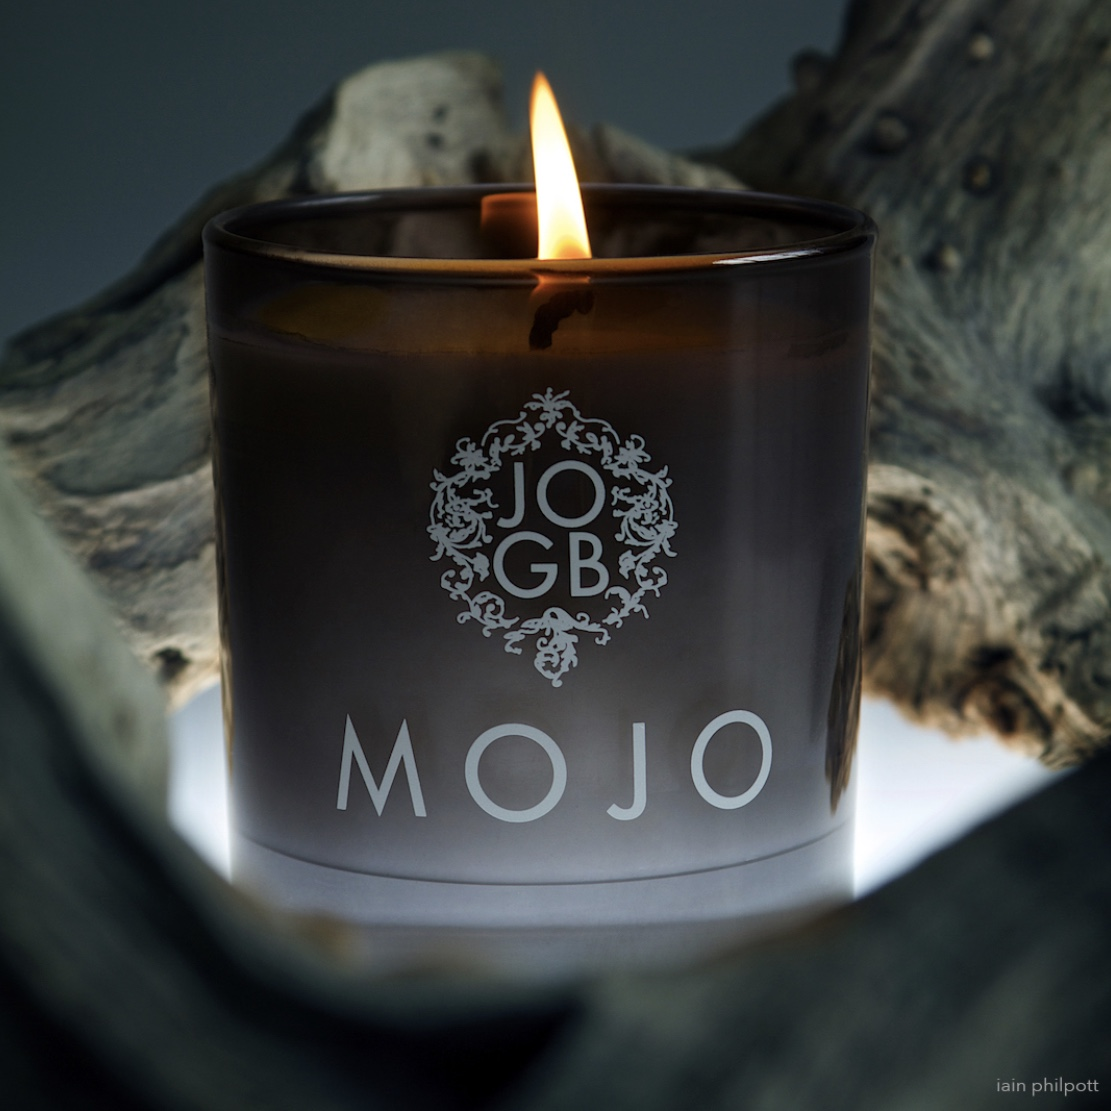 MOJO by Iain Philpott.jpg